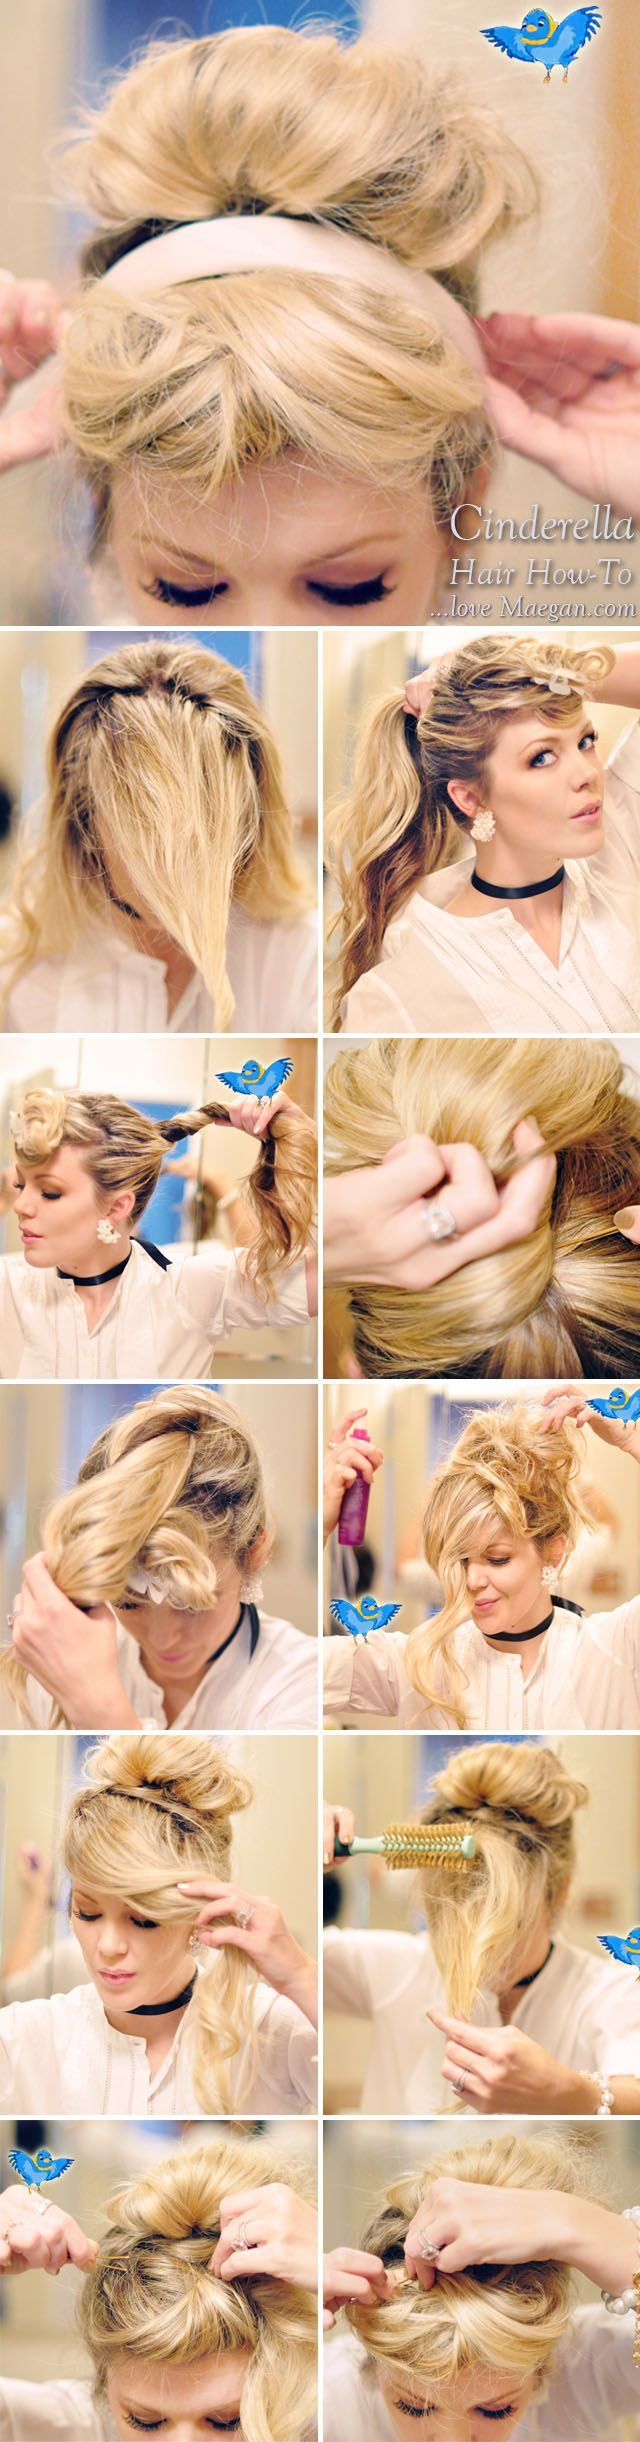 25 Trendy And Stylish Hair Tutorials For You When my hair is longer, I'm going to try this :)